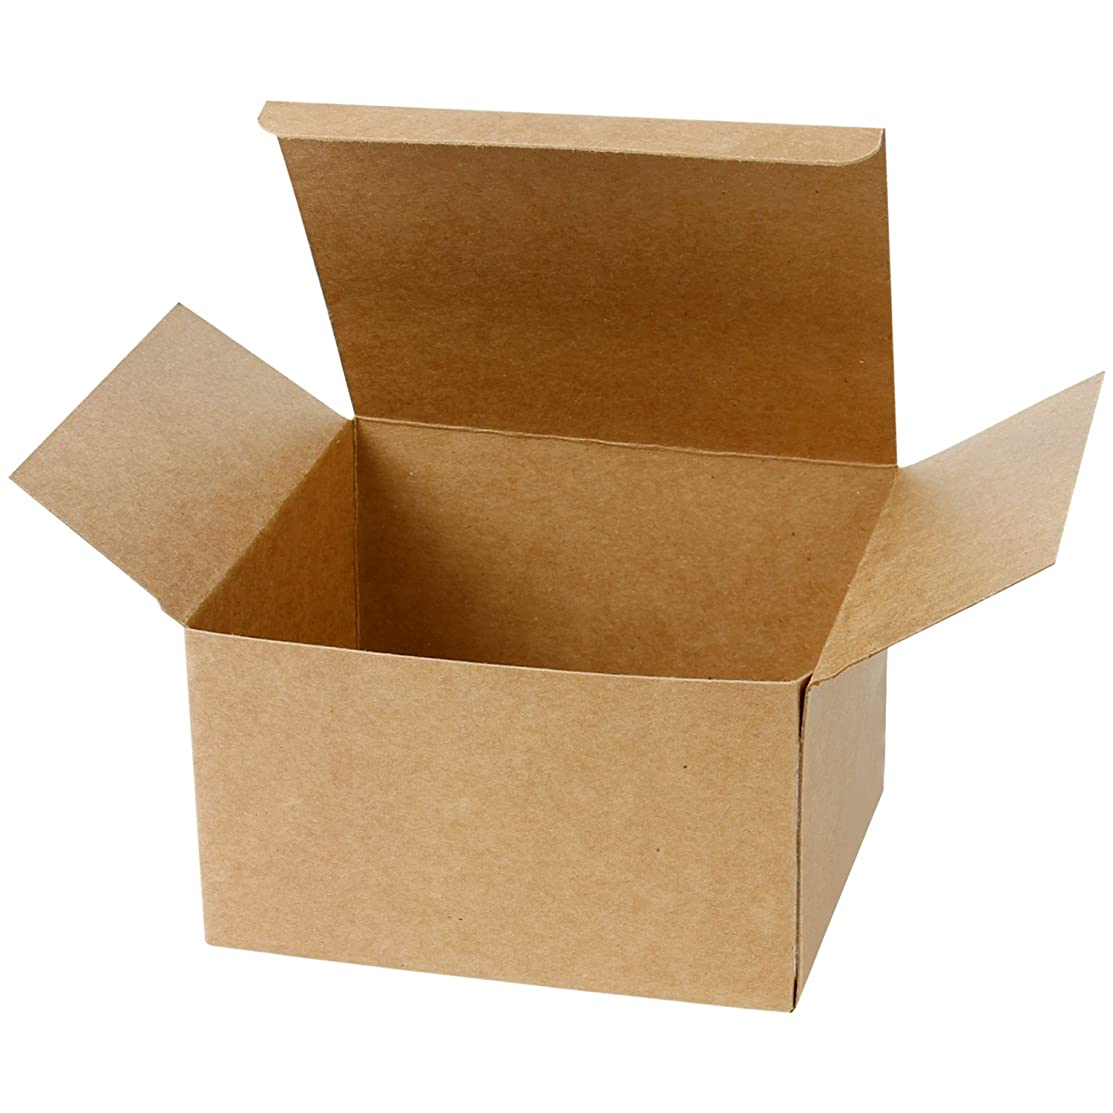 LaRibbons 20Pcs Recycled Gift Boxes - 8 x 8 x 4 inches Brown Paper Box Kraft Cardboard Boxes with Lids for Party, Wedding, Gift Wrap